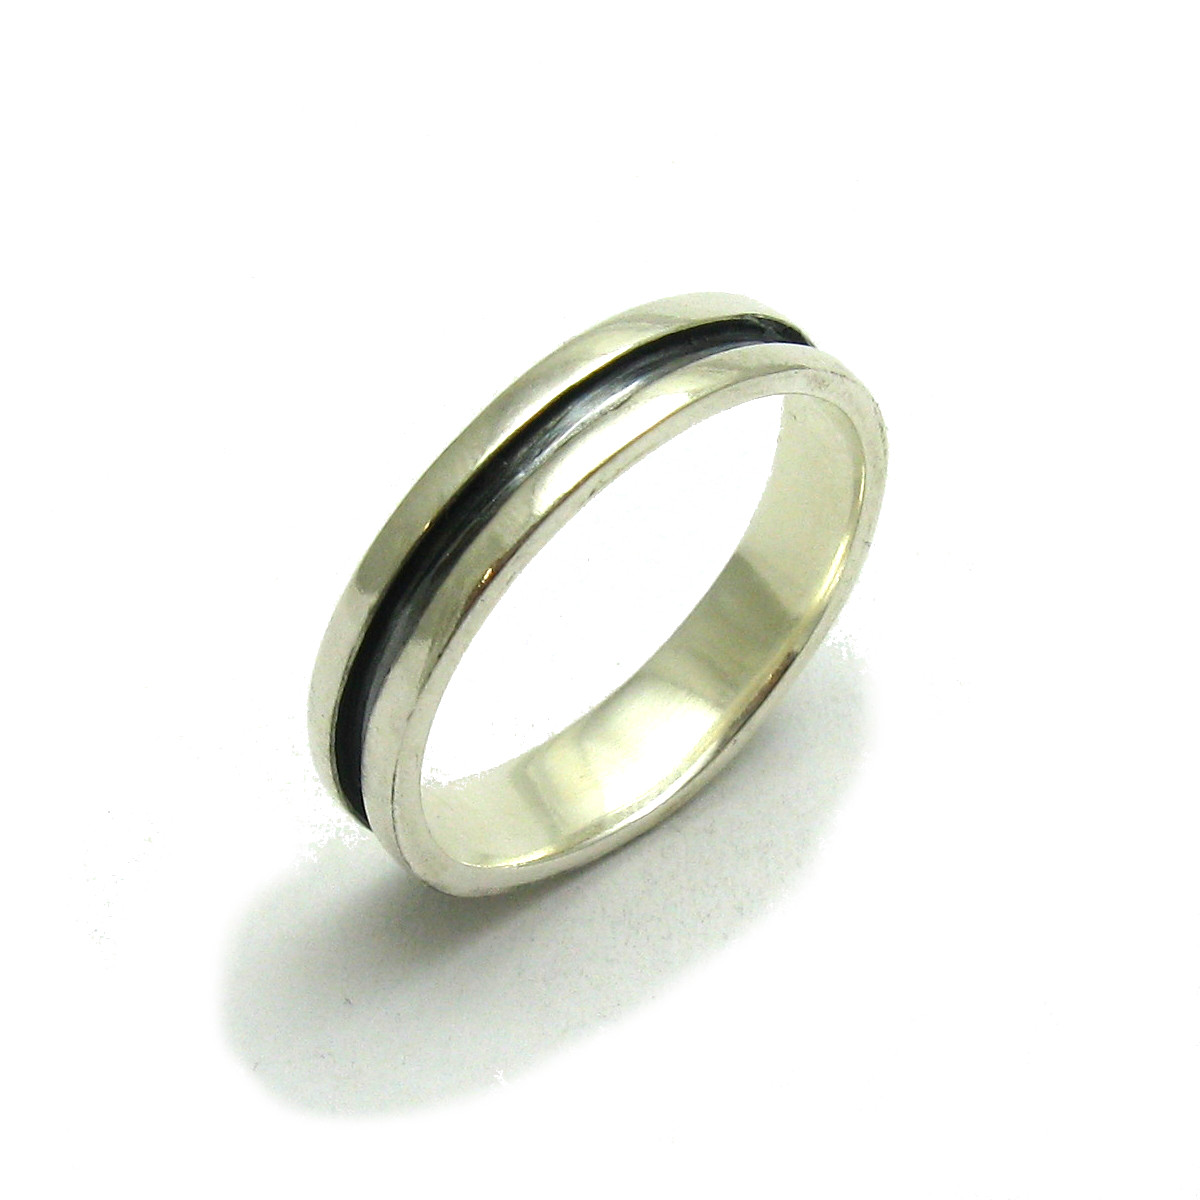 Silver ring - R001642